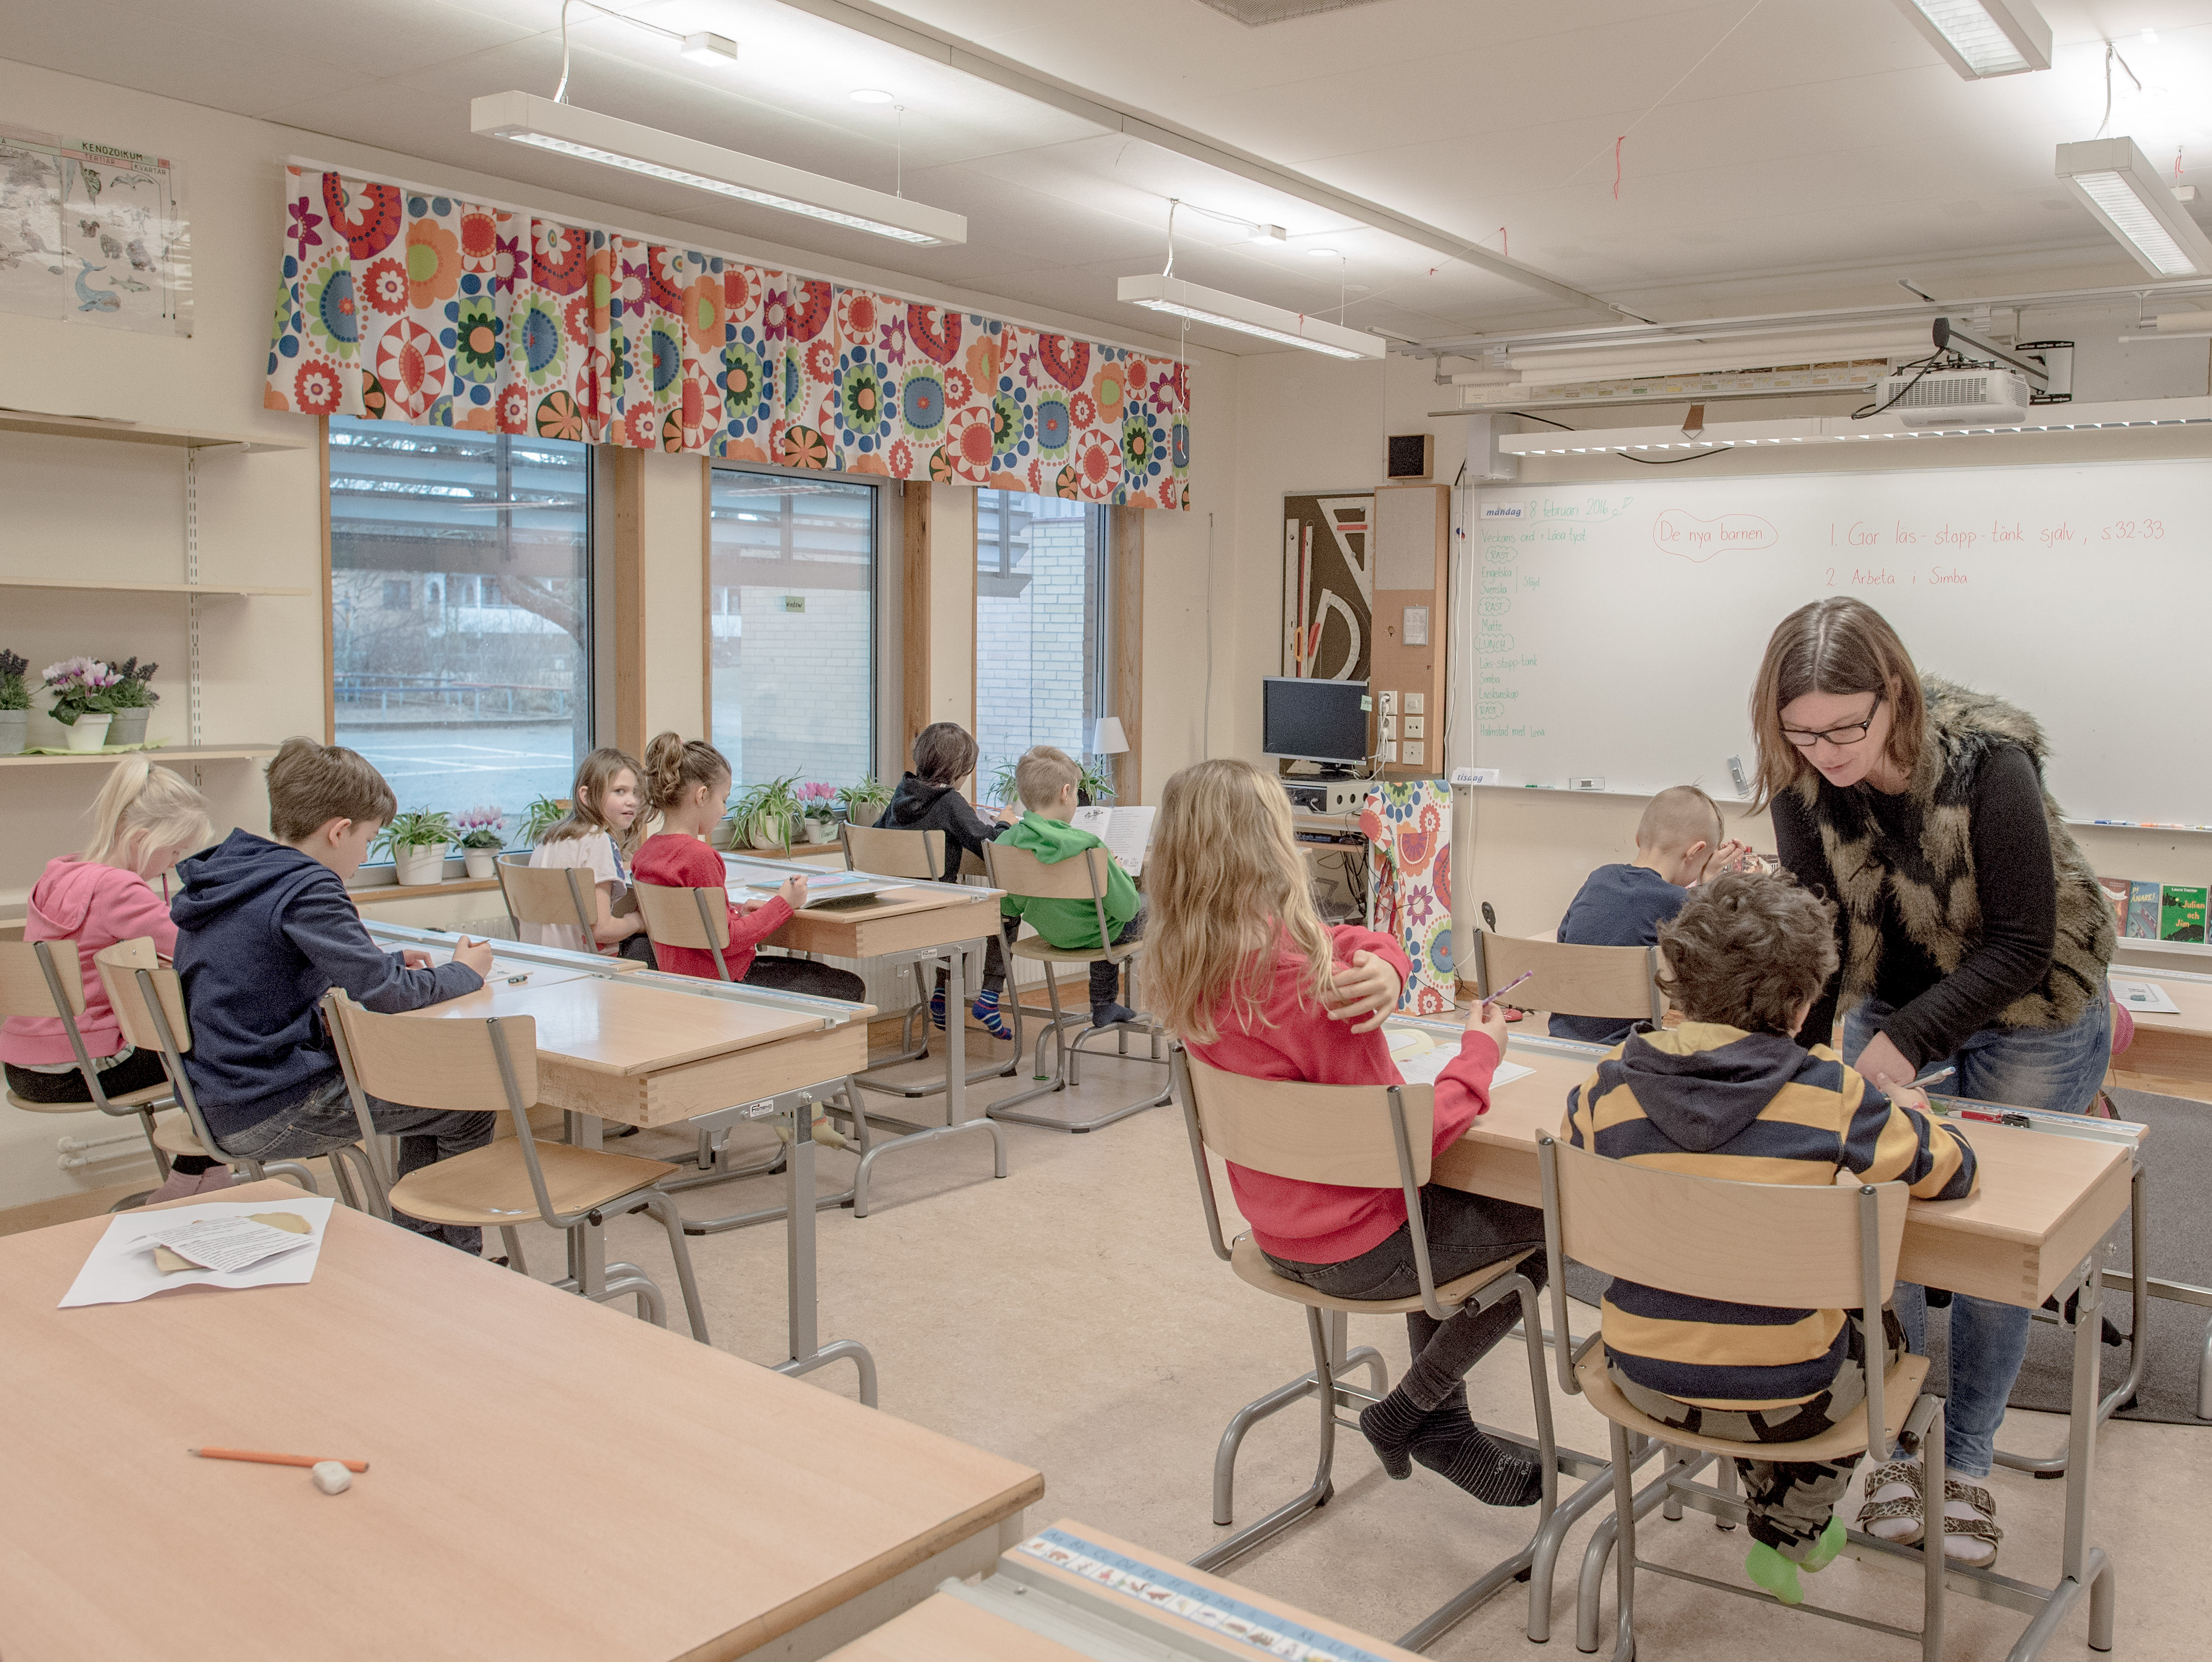 HALMSTAD, SWEDEN - FEBRUARY 08: Swedish students are seen in a classroom of a school on February 8, 2016 in Halmstad, Sweden. (Photo by David Ramos/Getty Images)